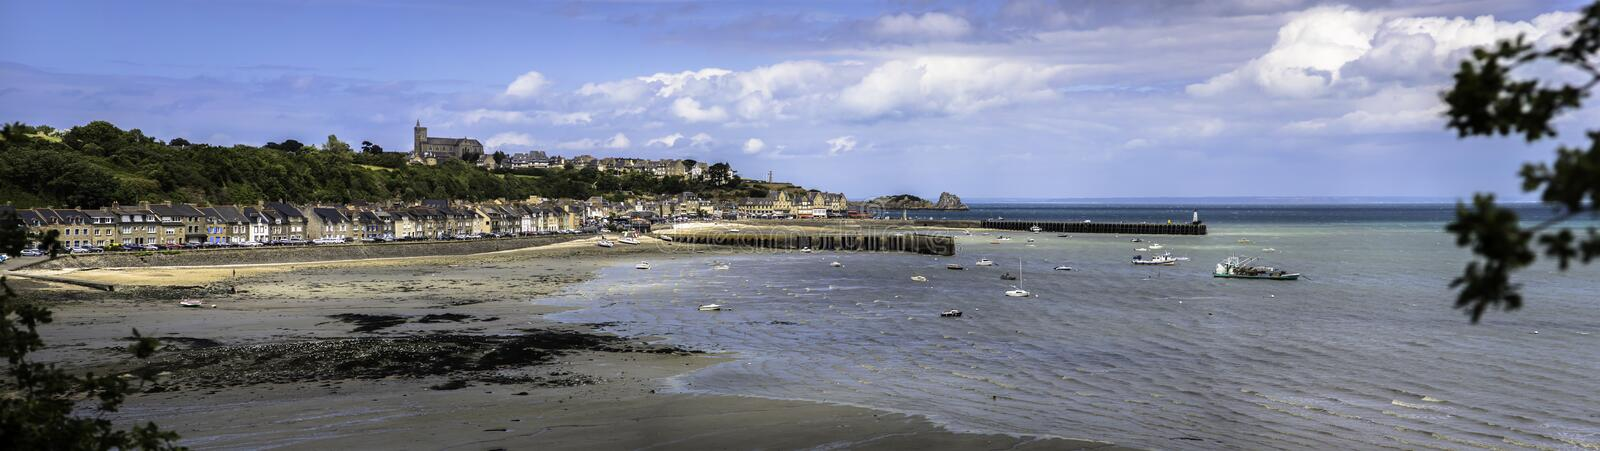 Cancale bay panorama stock image